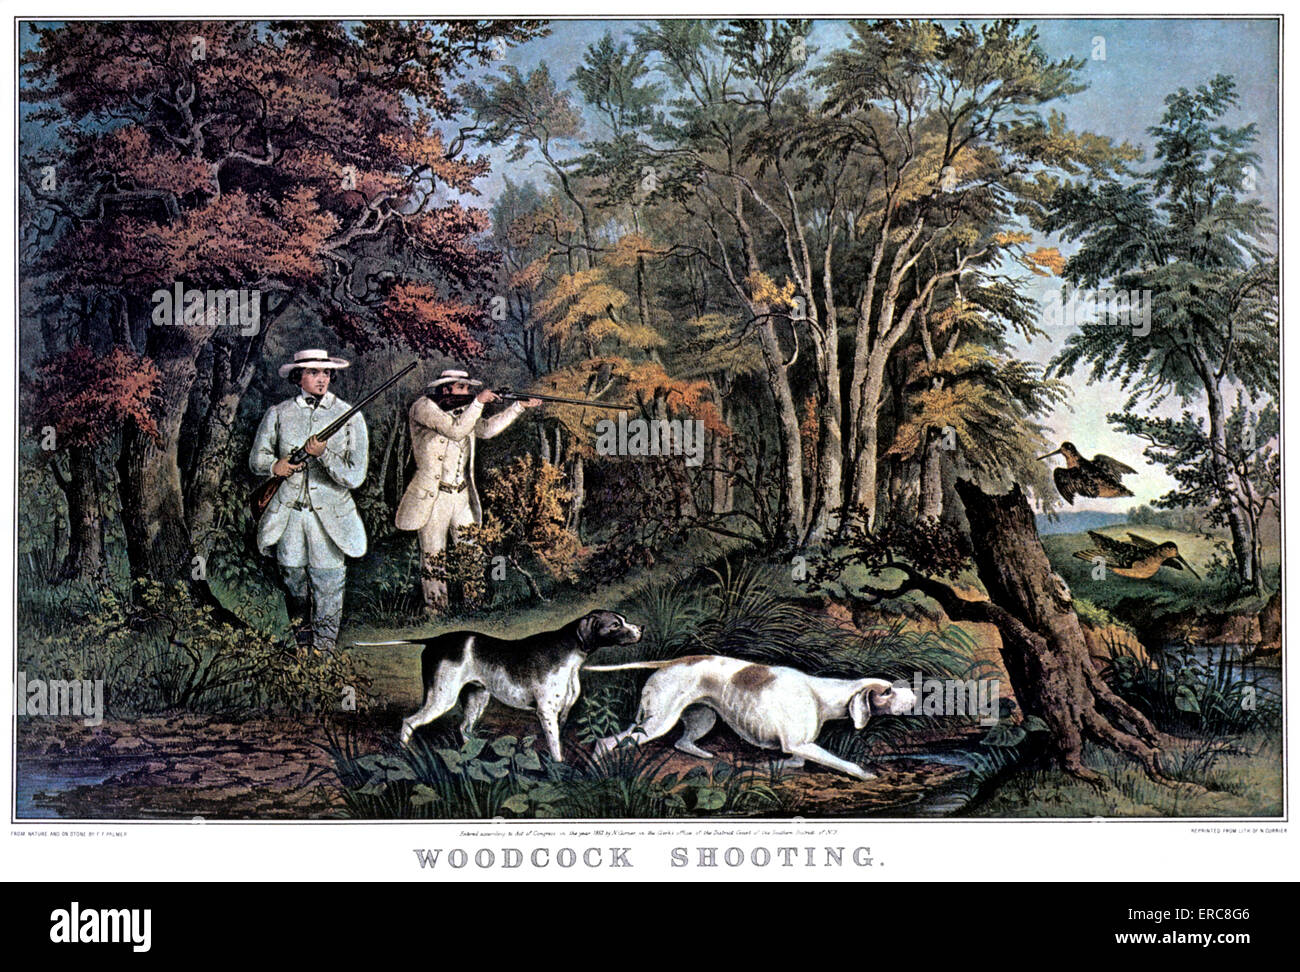 1850s WOODCOCK SHOOTING - CURRIER & IVES LITHOGRAPH - 1852 - Stock Image